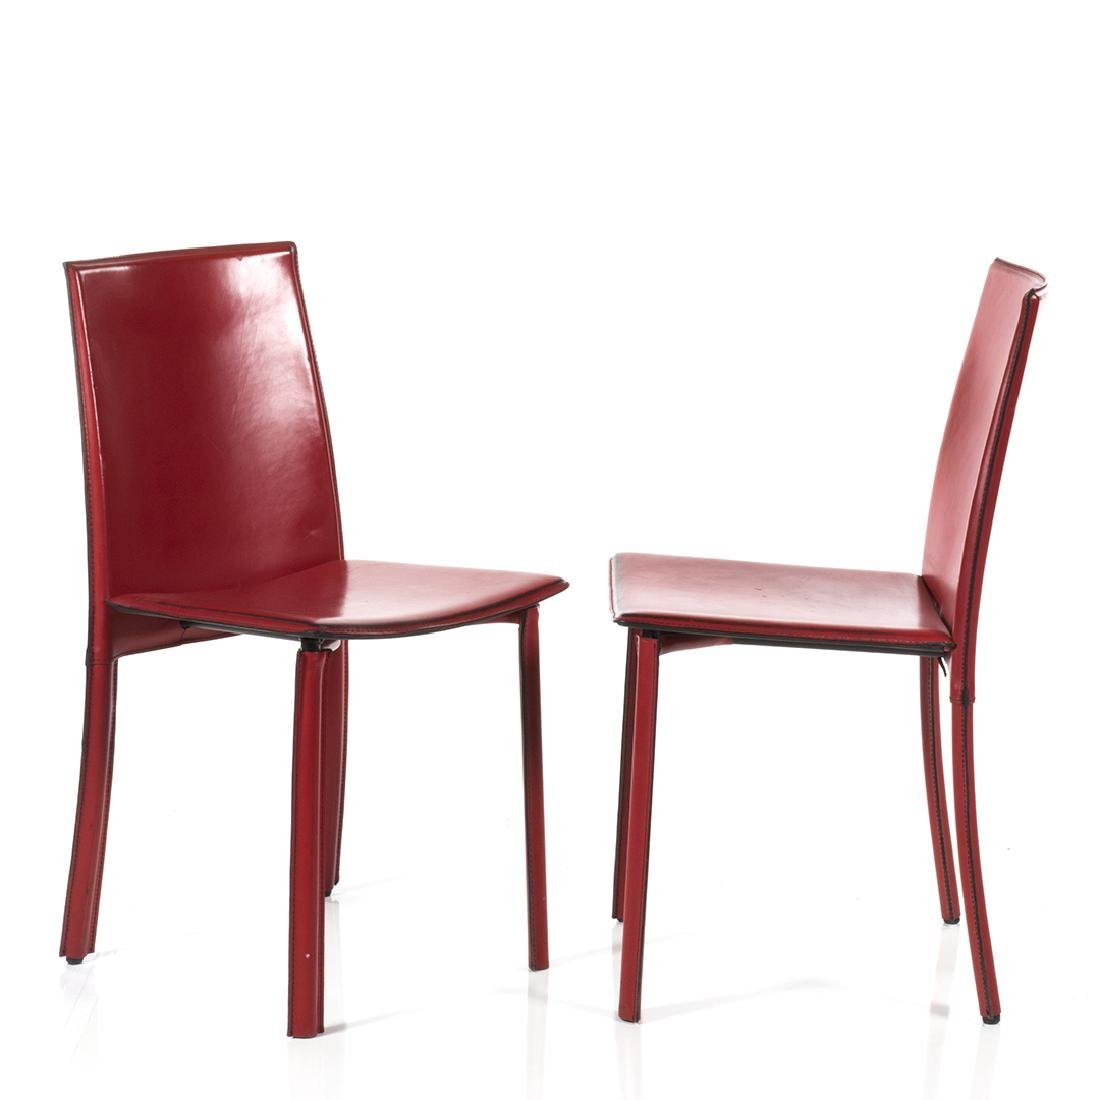 Mario Bellini Style Chairs (2) - 3